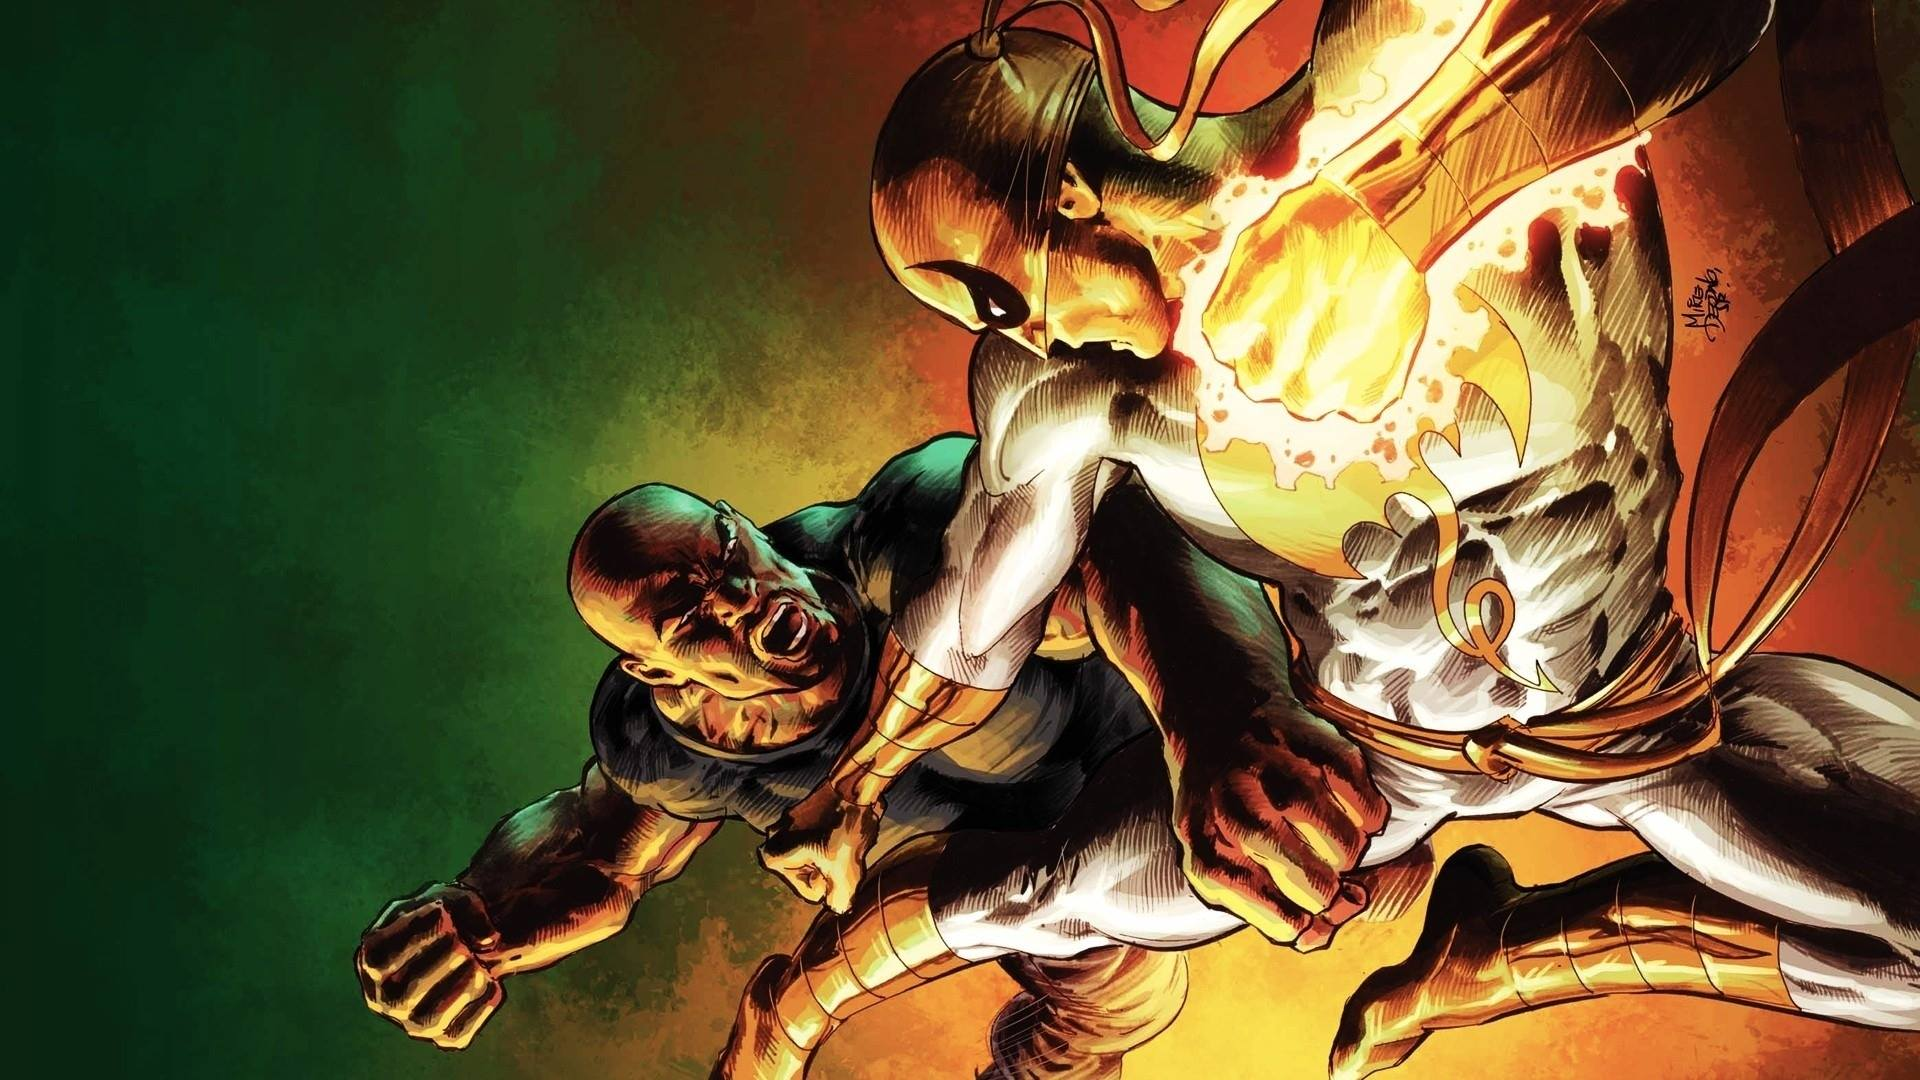 affcafcccacfcf-luke-cage-iron-fist-wallpaper-wp3602270